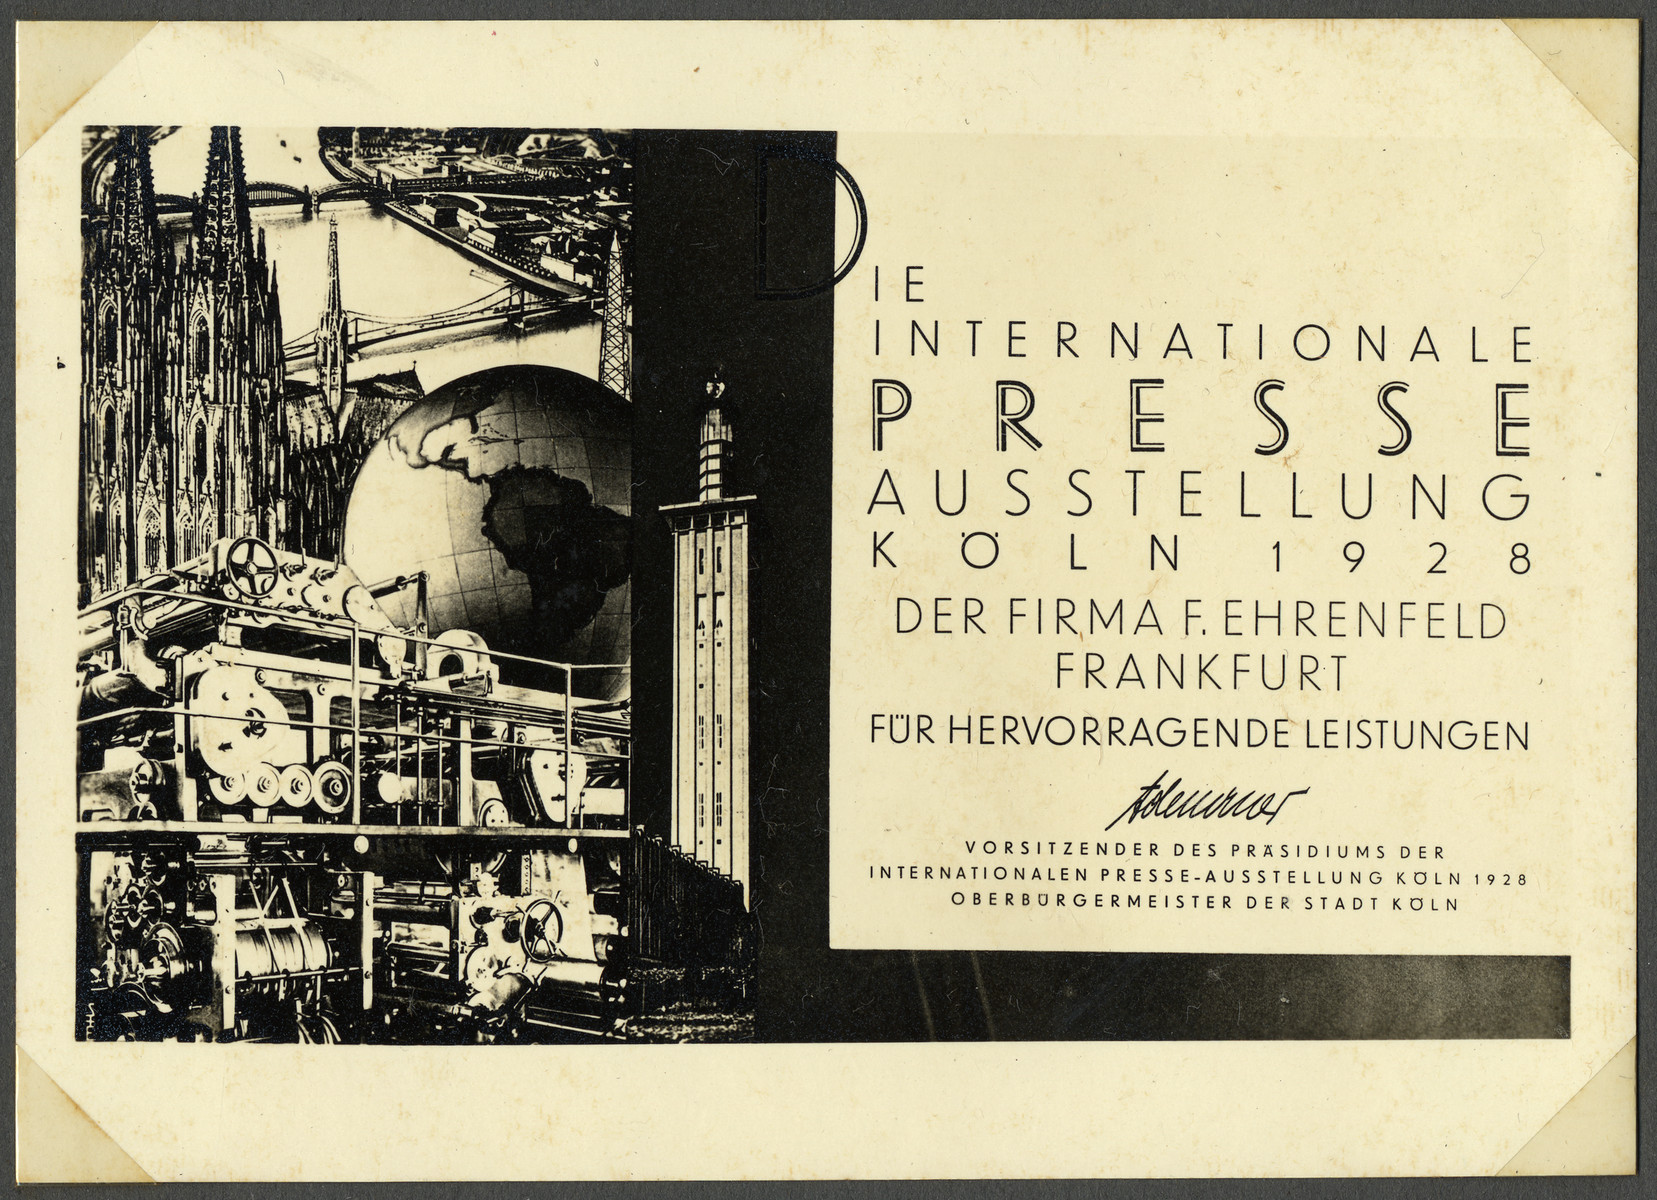 Certificate of award given to the Enrenfeld company for outstanding achievement by the International Press Exhibition and signed by Konrad Adenauer.